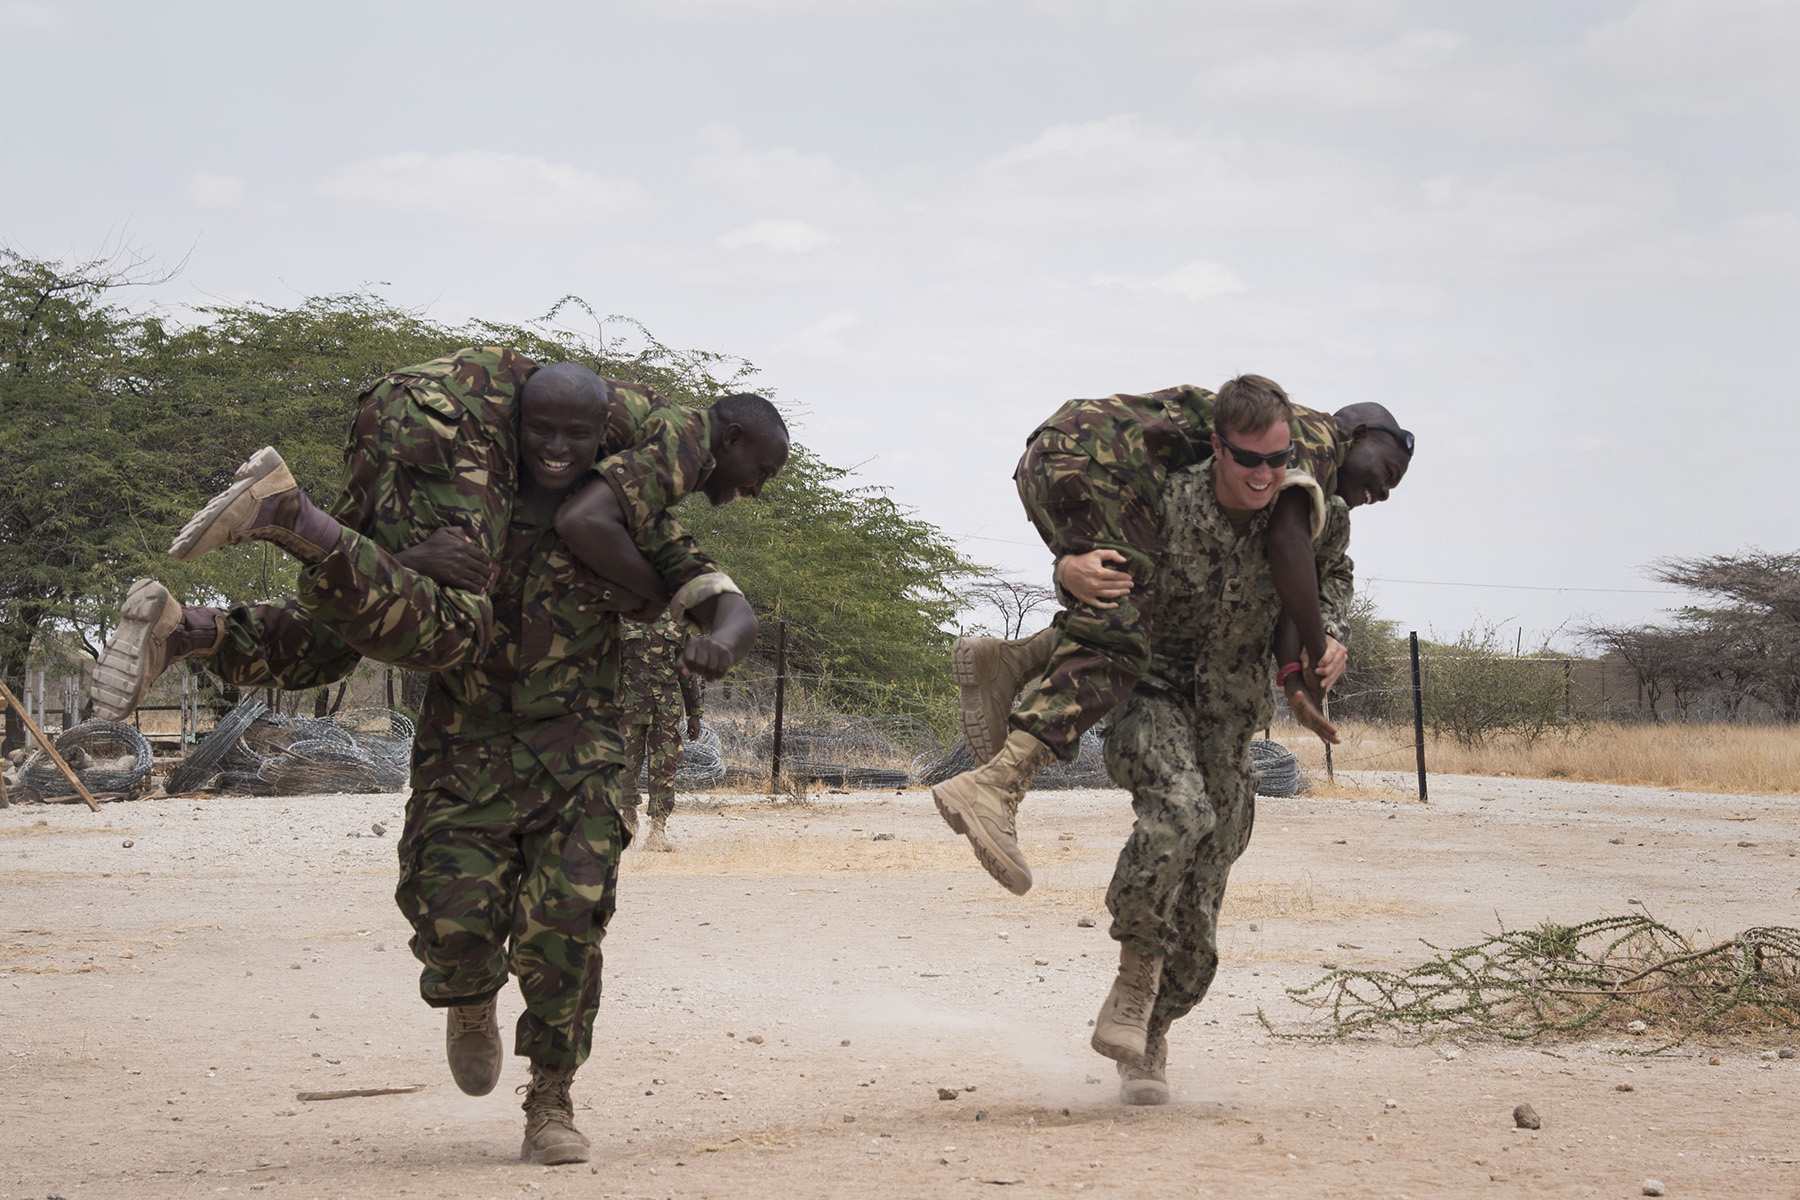 KENYA- U.S. Navy Explosive Ordnance Disposal Technician 3rd Class Nick Mettler, assigned to Task Force Sparta and currently deployed to Combined Joint Task Force-Horn of Africa, races Kenyan Defense Force combat engineers during a buddy carry lesson for the tactical combat medical training portion of Deliberate Kindle 2016, Sept. 14, at a Kenyan training facility. The medical training was just one portion of the four-week course designed to give Humanitarian Mine Action training to course attendees to prepare them for future deployments with the African Union Mission in Somalia. (U.S. Air Force photo by Staff Sgt. Tiffany DeNault)